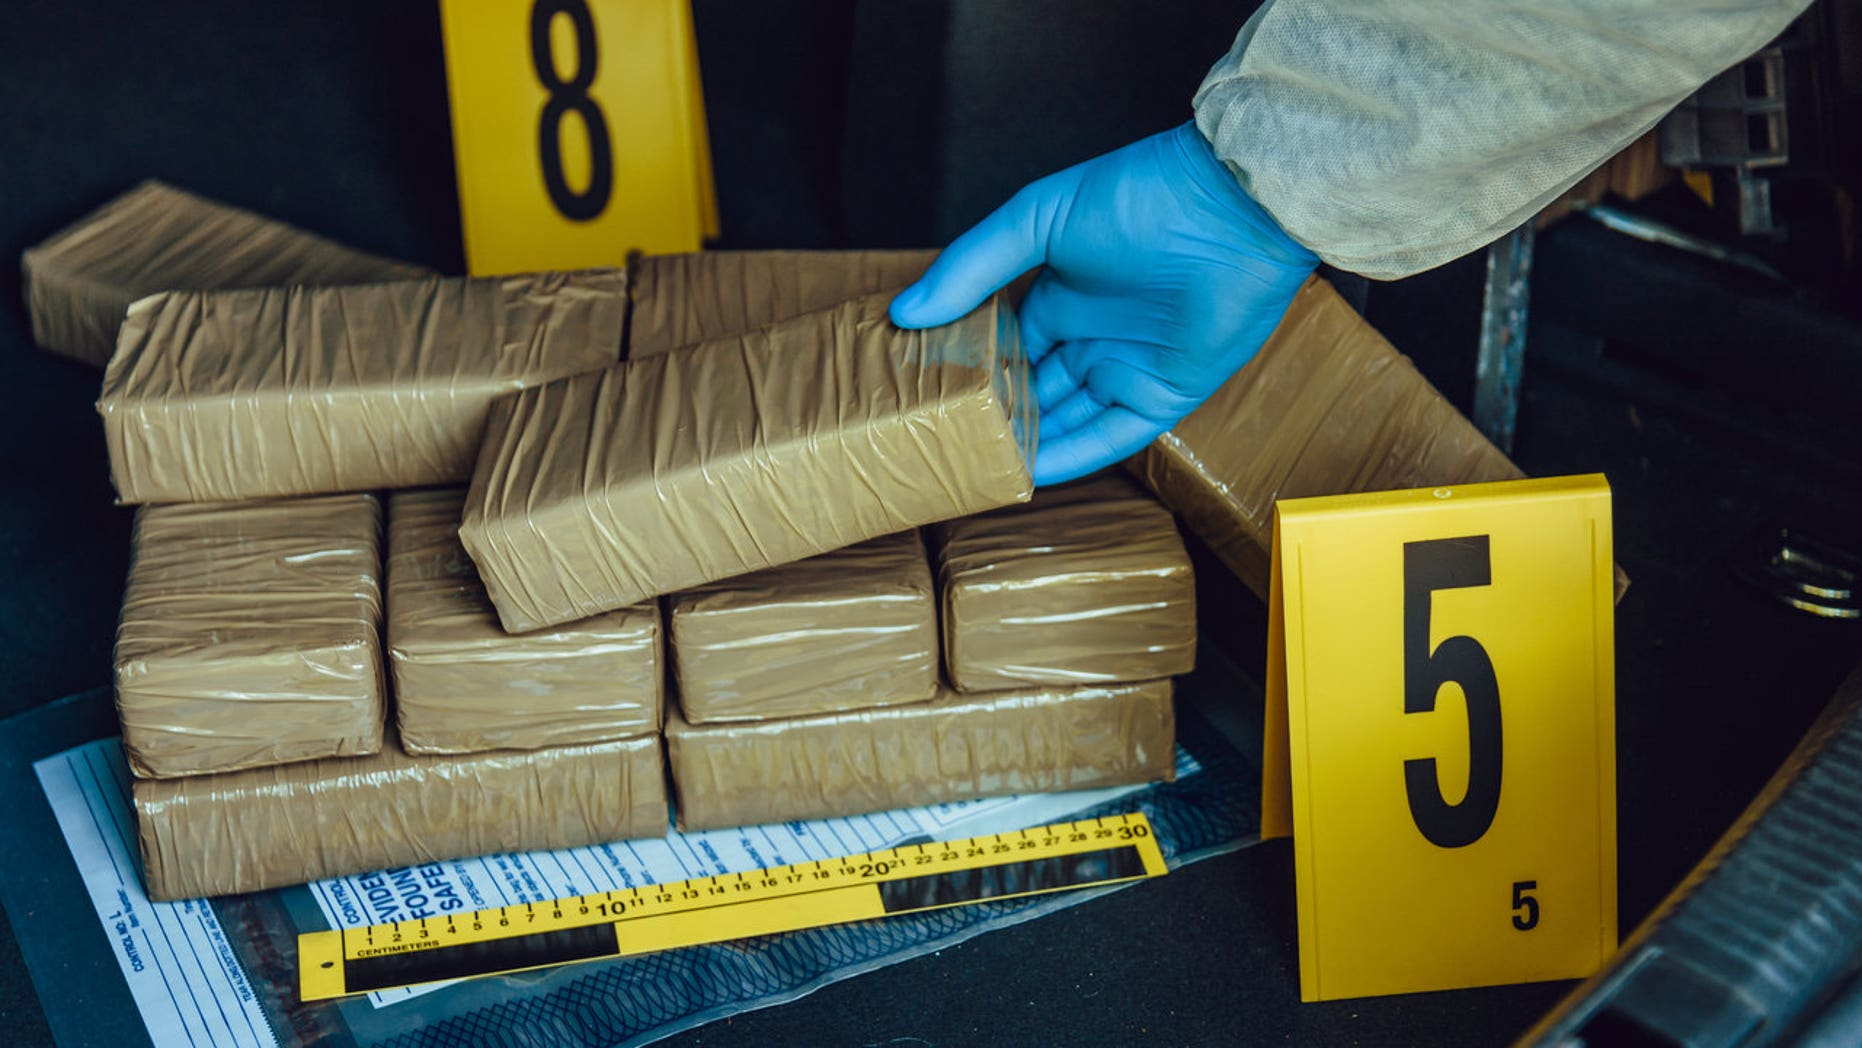 Prosecutors said Dominguez's drug operation distributed cocaine through a pipeline into the U.S. through California and Texas, then moved the proceeds through a reverse pipeline back south.<br>